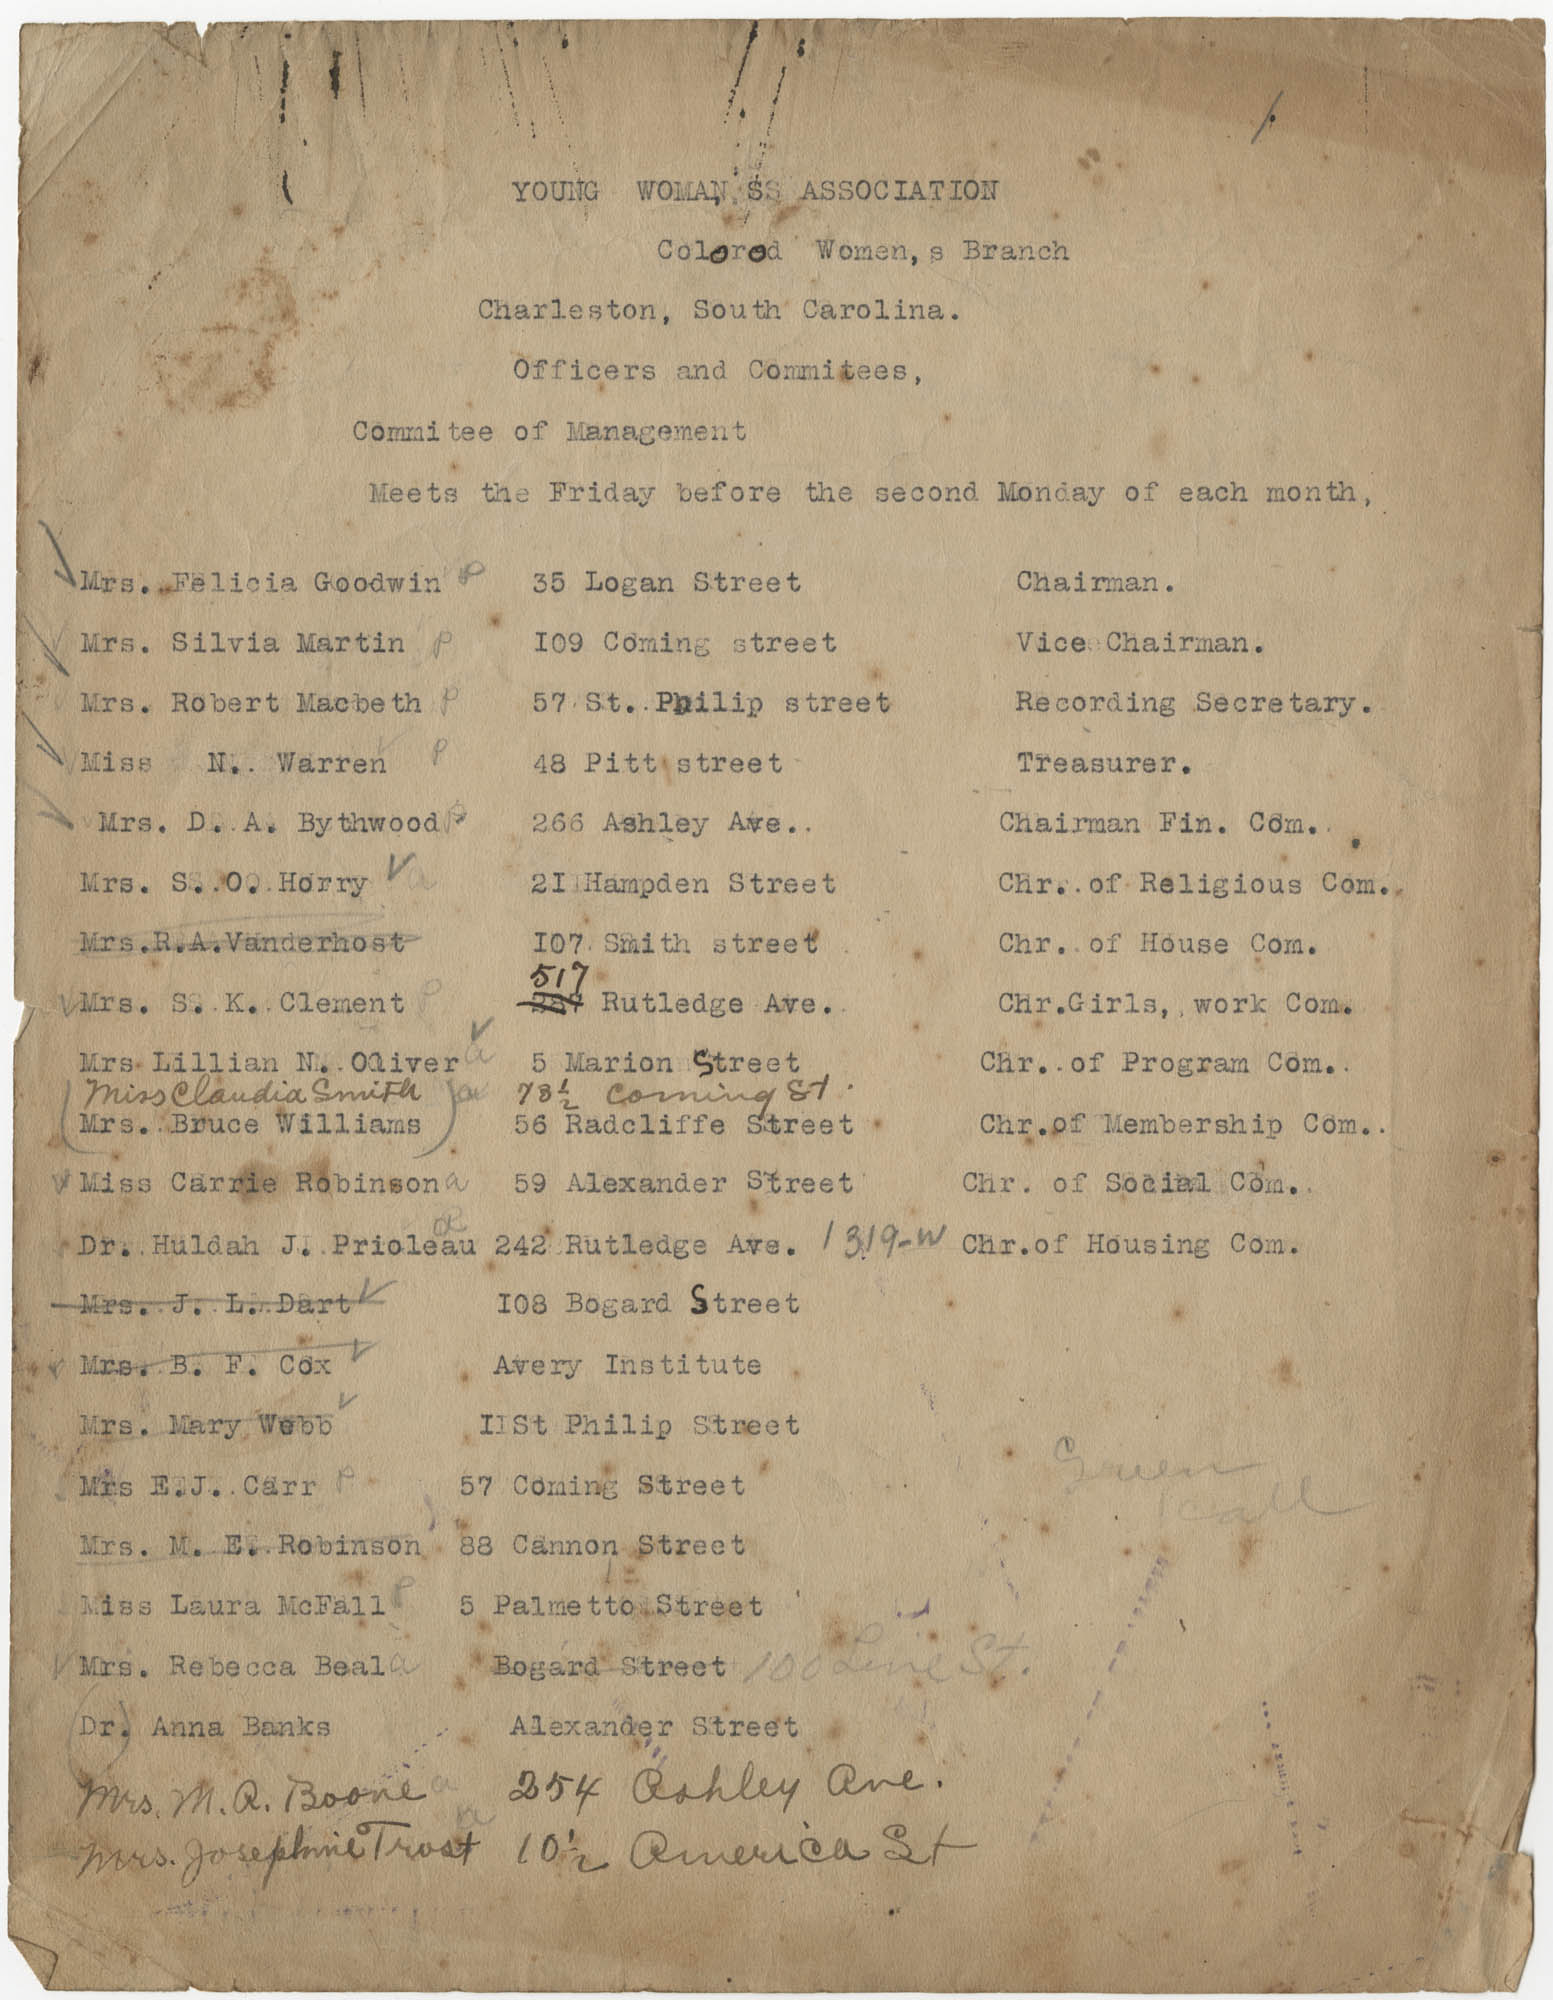 Coming Street Y.W.C.A. Officers and Committee List